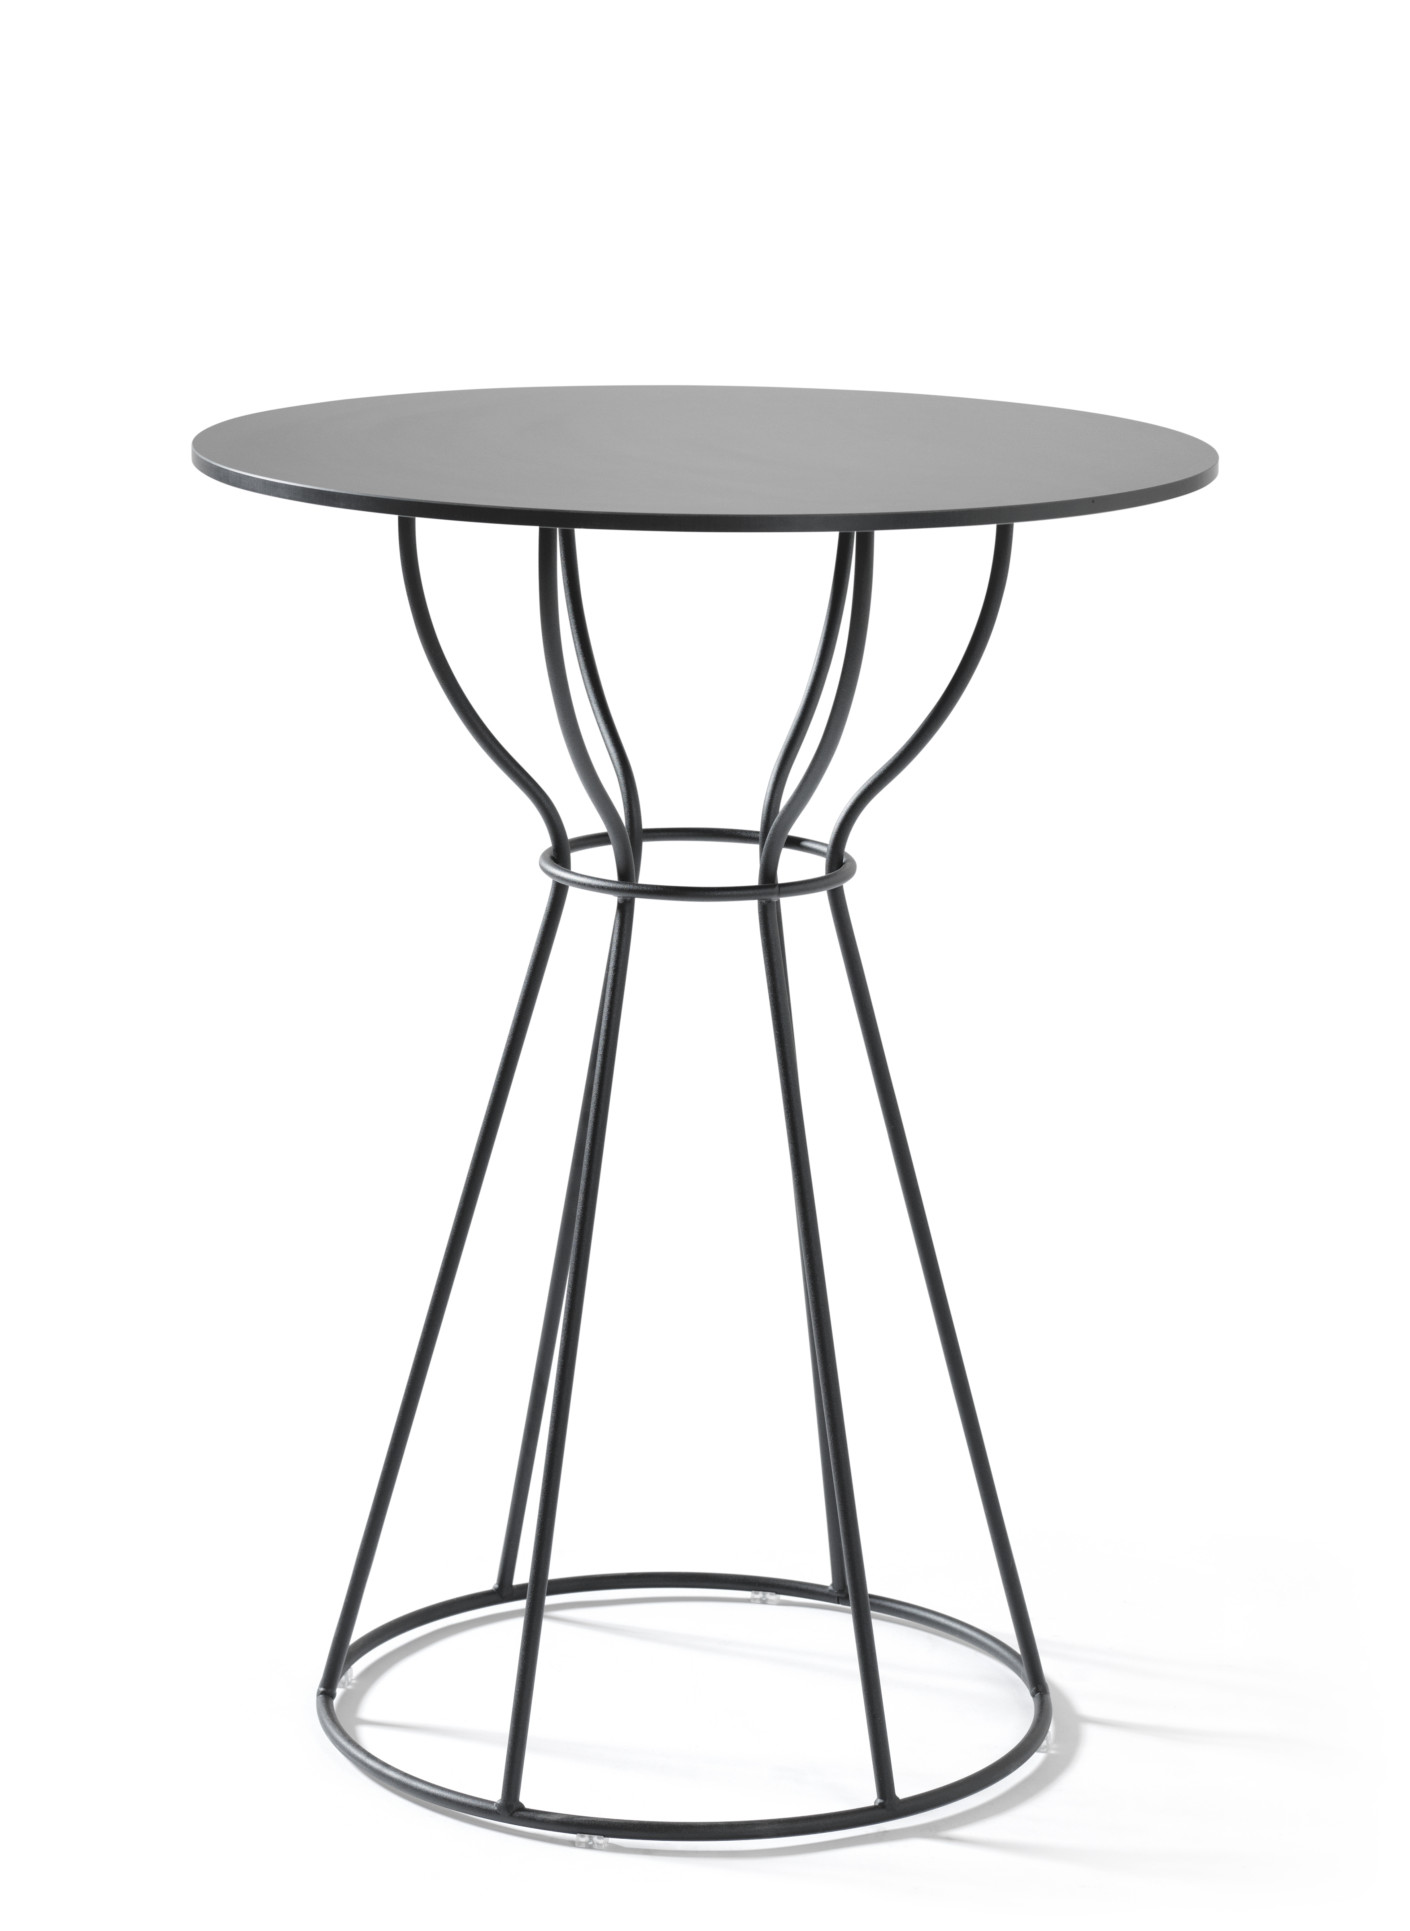 Deco by Lammhults STYLEPARK